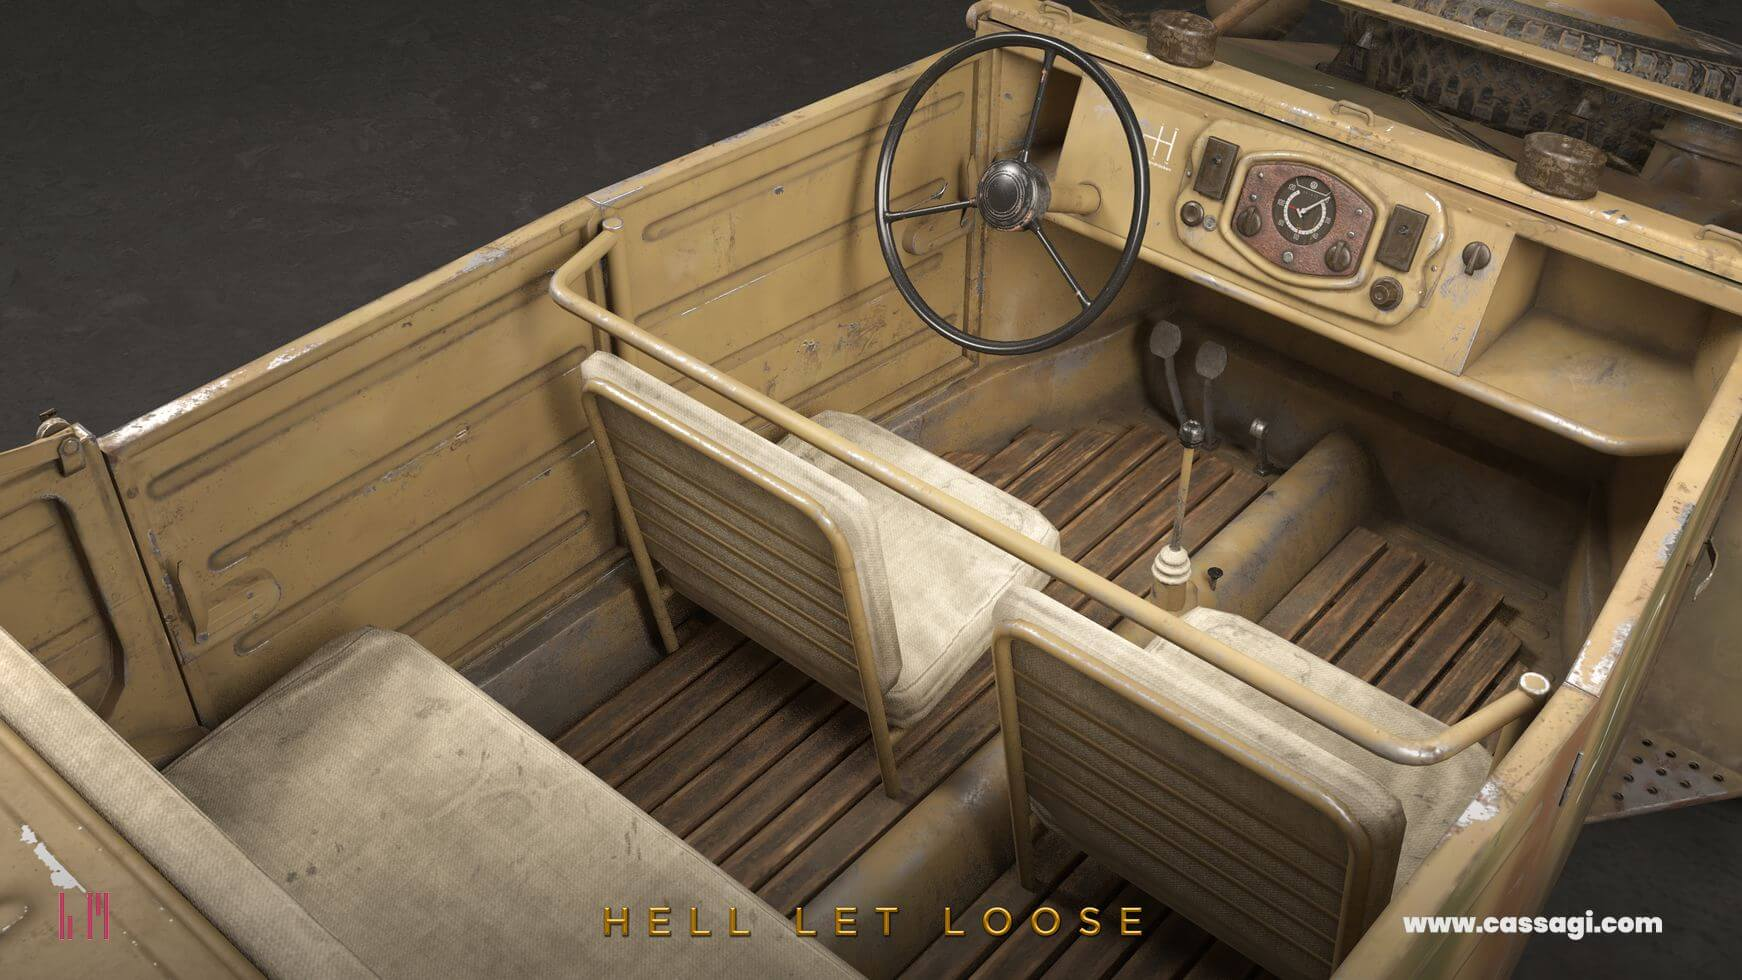 hell let loose Kubelwagen in game model interior